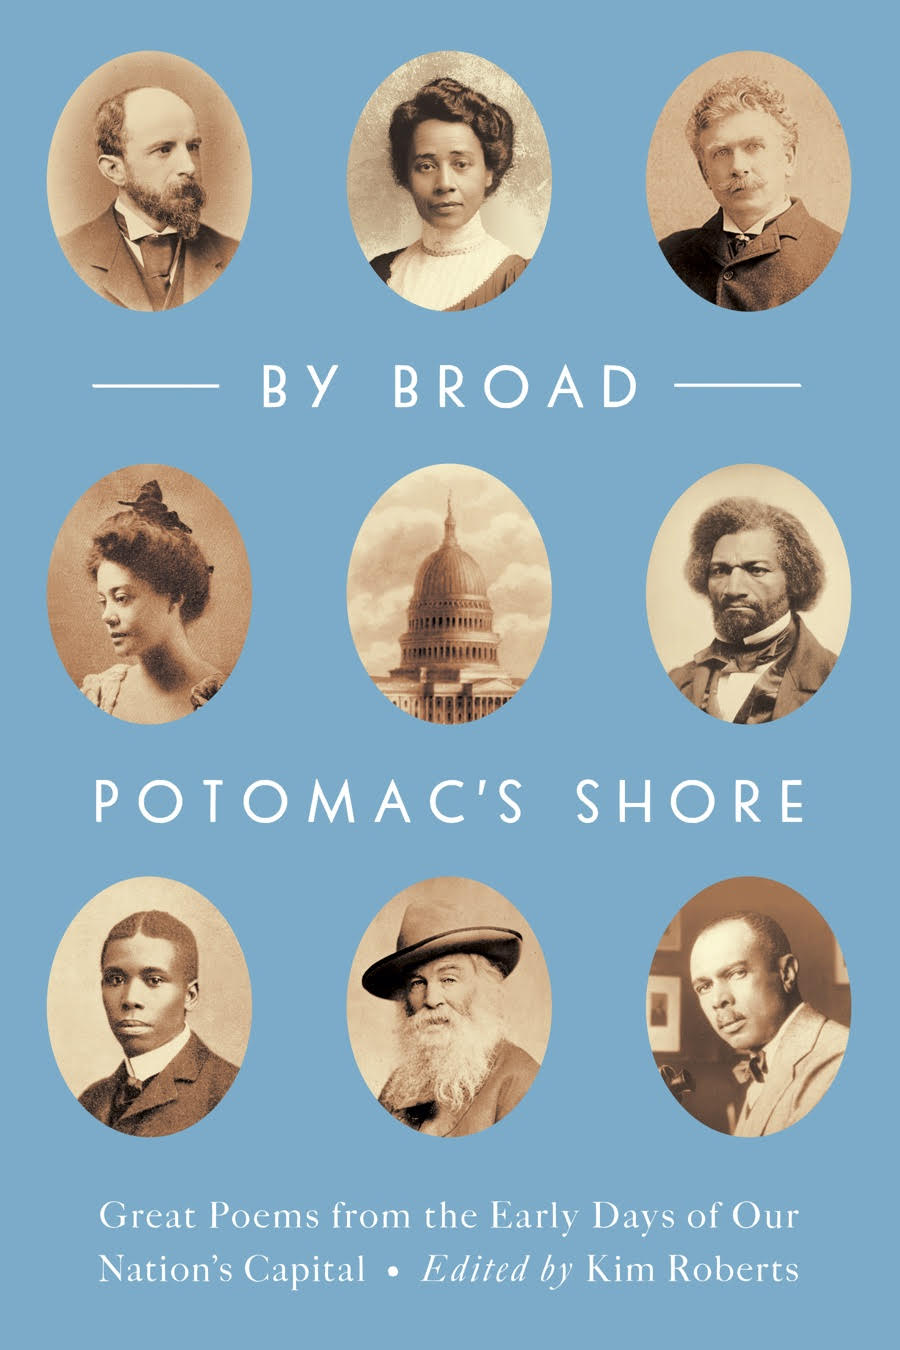 The book cover of By Broad Potomac's Shore